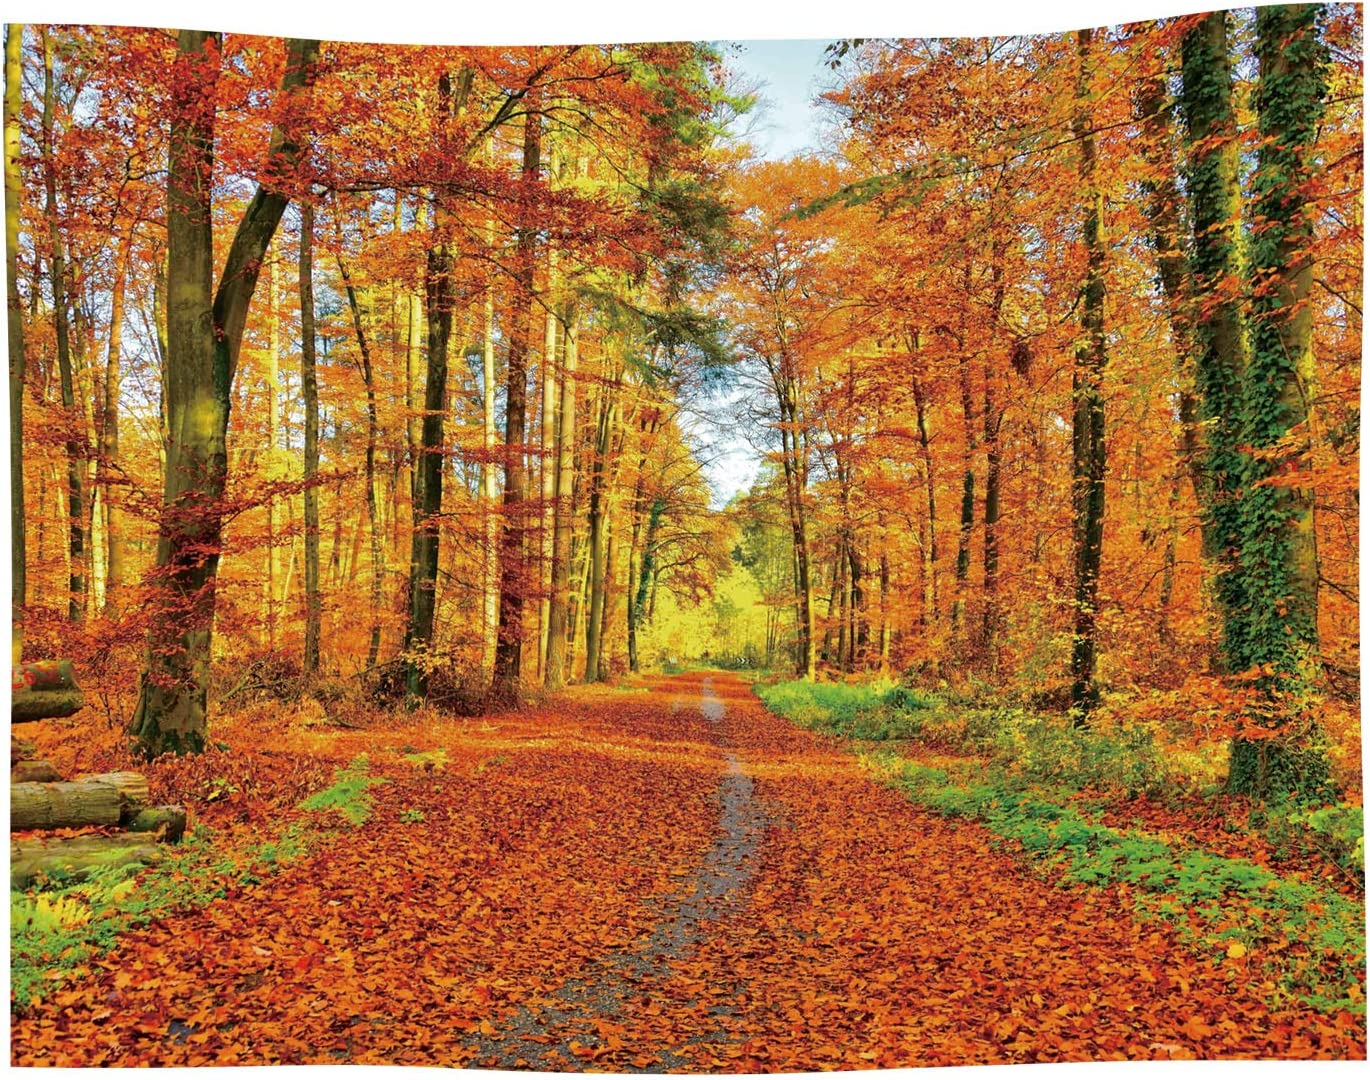 Amazon Com Autumn Landscape Tapestry Fall Nature Scenic Scenery Trees Woods Forest Plant Leaves Art Decor Wall Hanging For Bedroom Living Room Dorm Home Kitchen